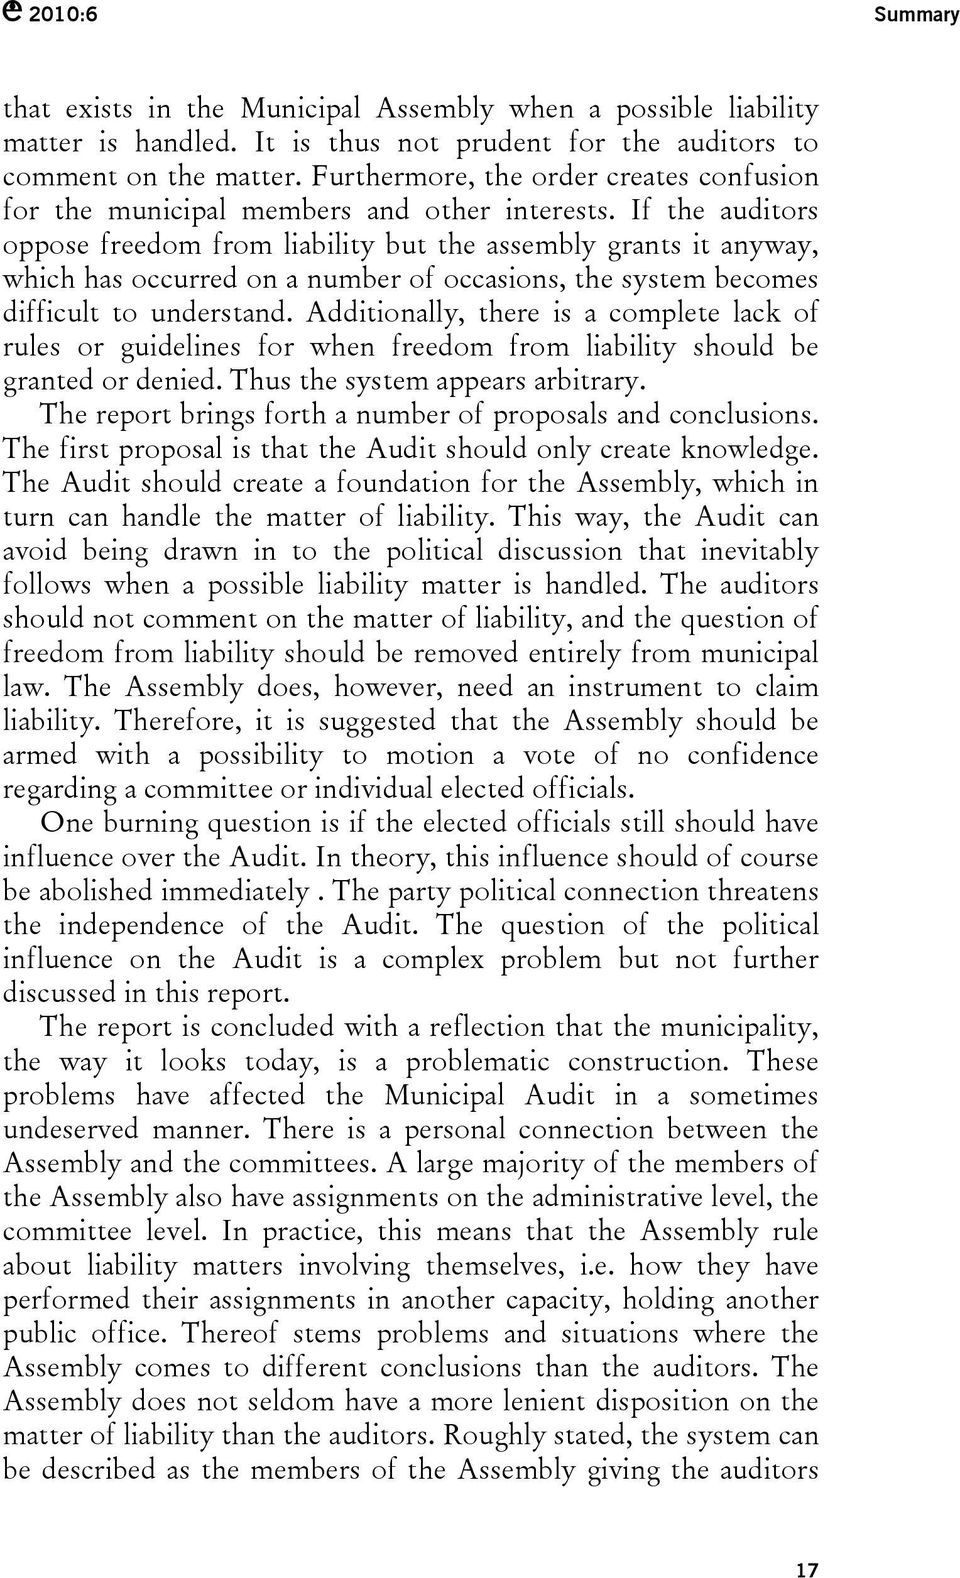 If the auditors oppose freedom from liability but the assembly grants it anyway, which has occurred on a number of occasions, the system becomes difficult to understand.